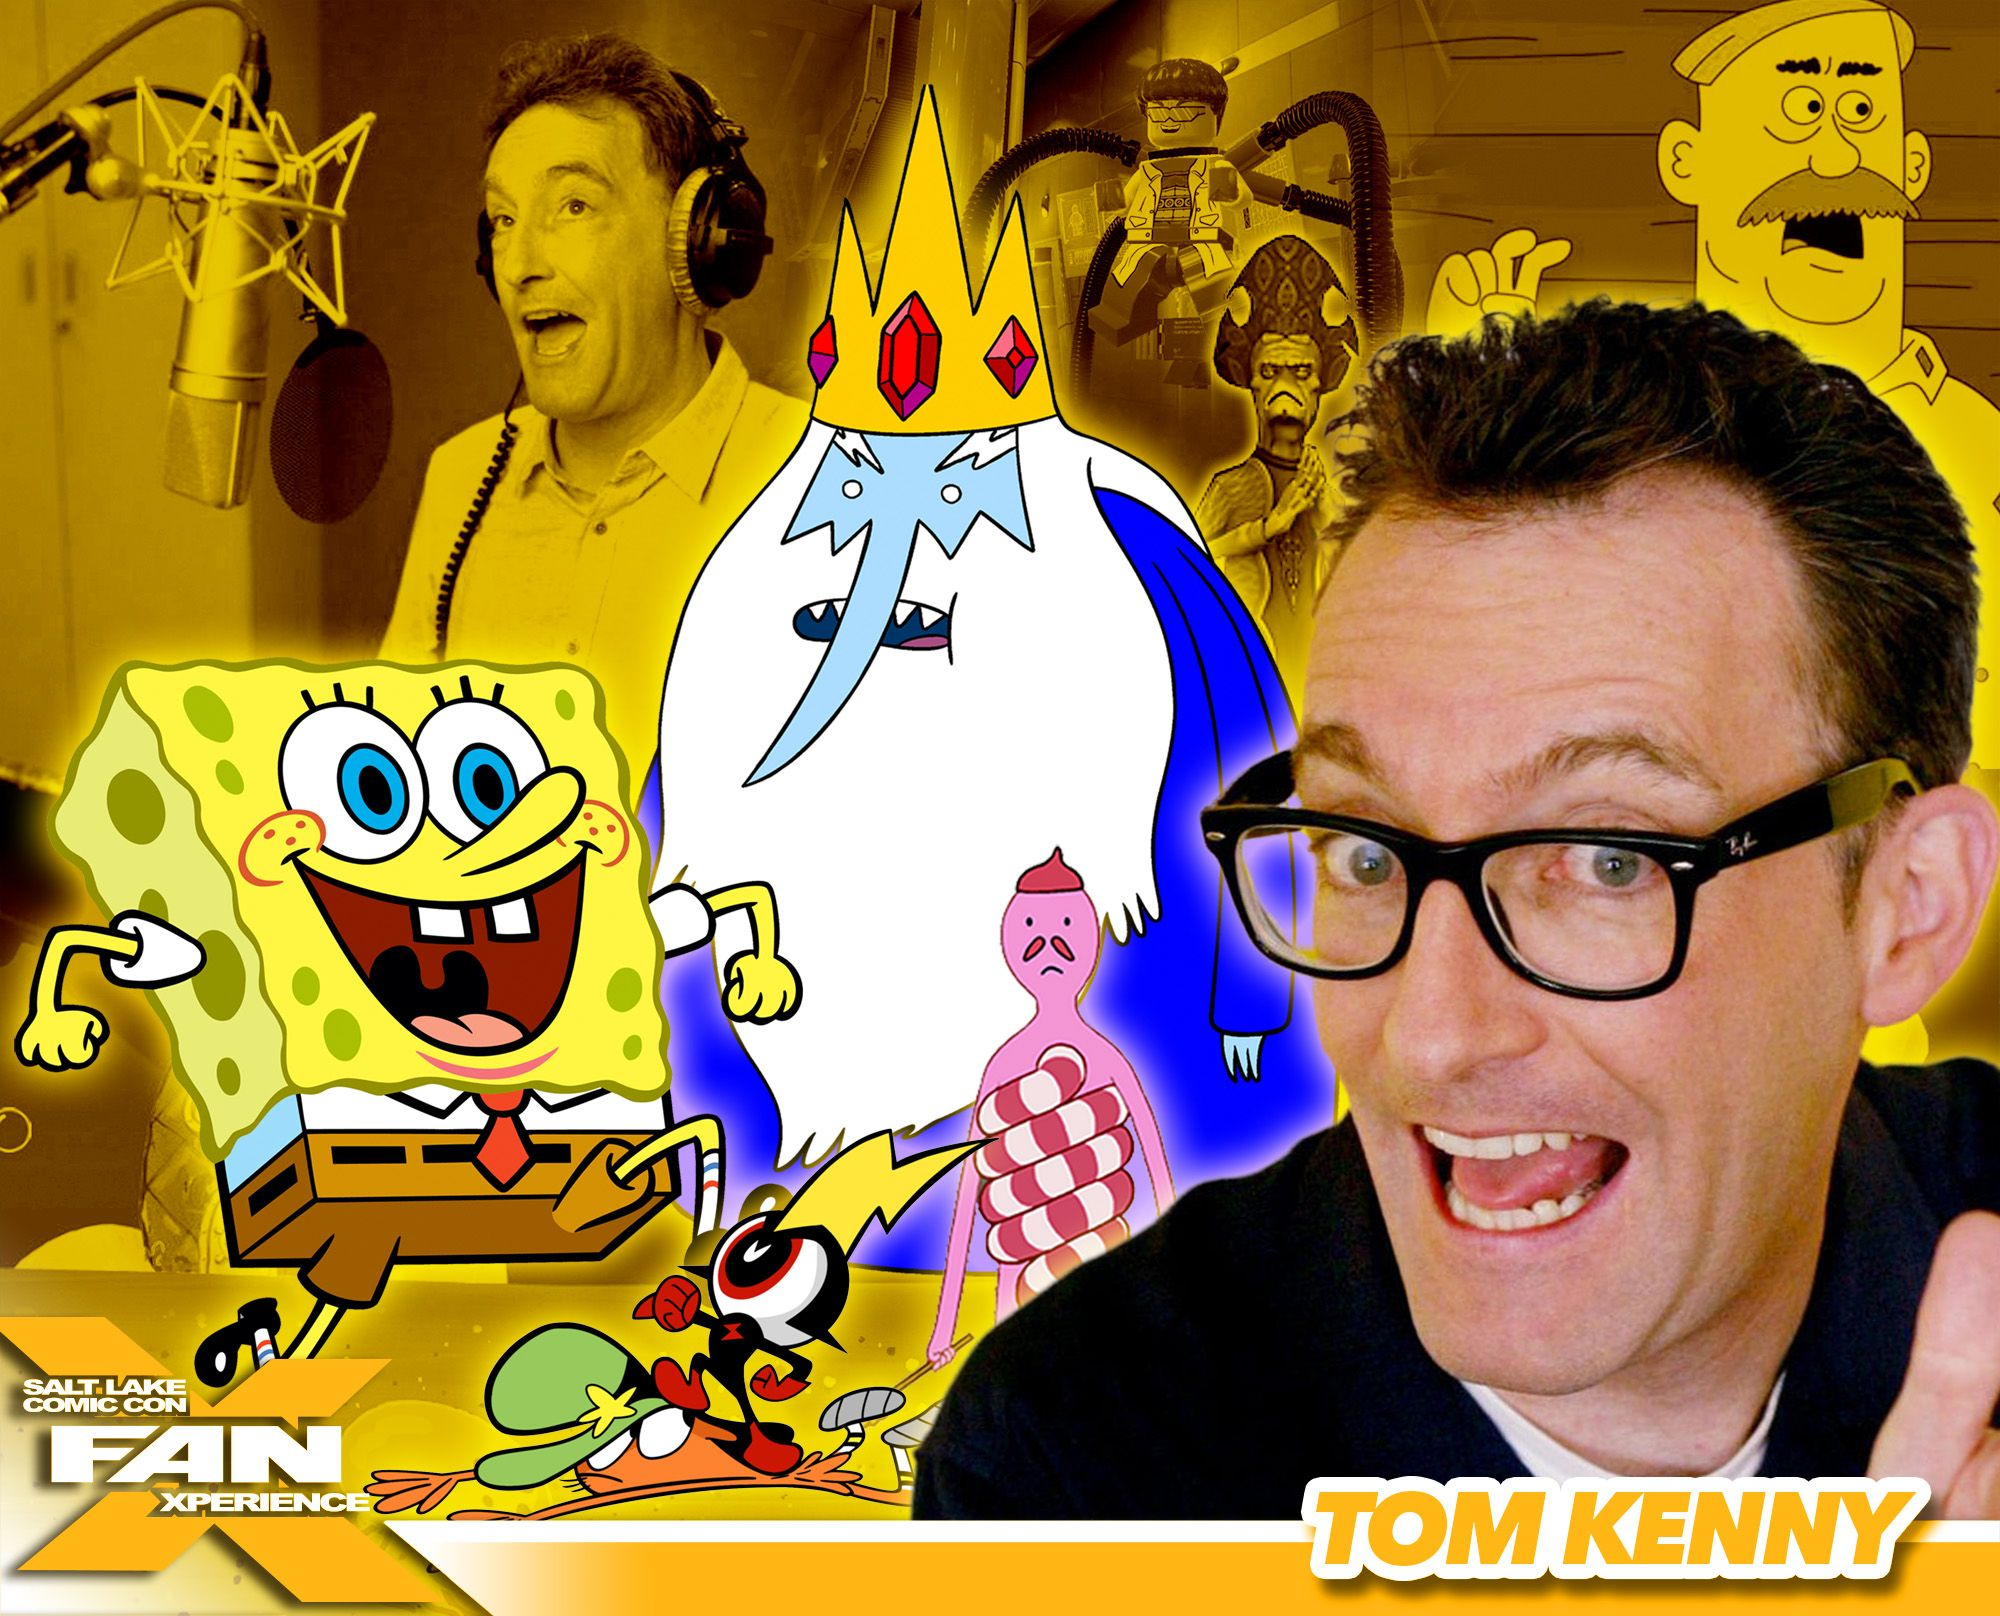 Pin To Win Meet Voice Actor Tom Kenny At Fanx16